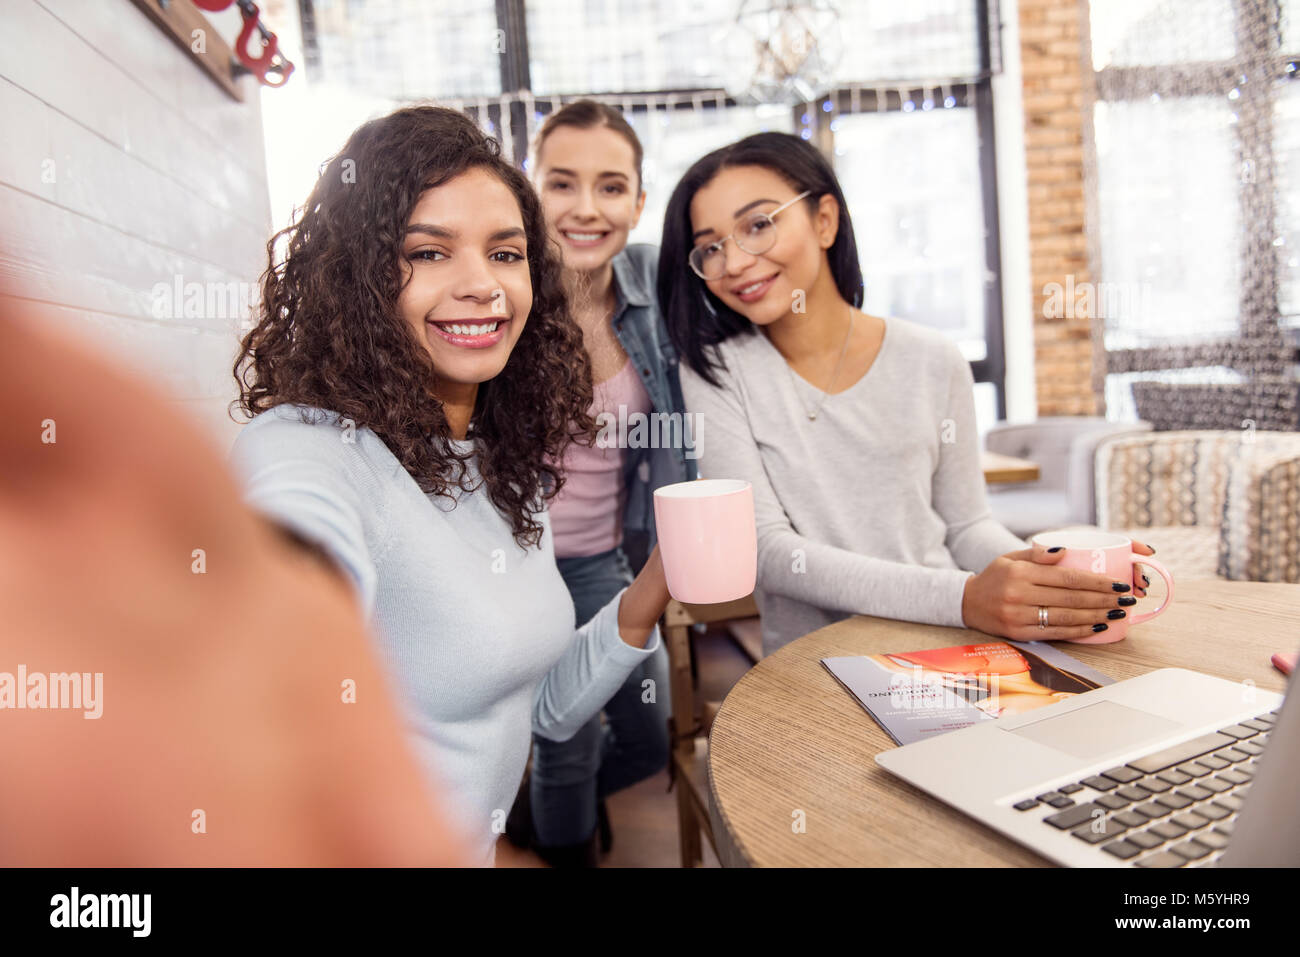 Attractive three students discarding from learning - Stock Image